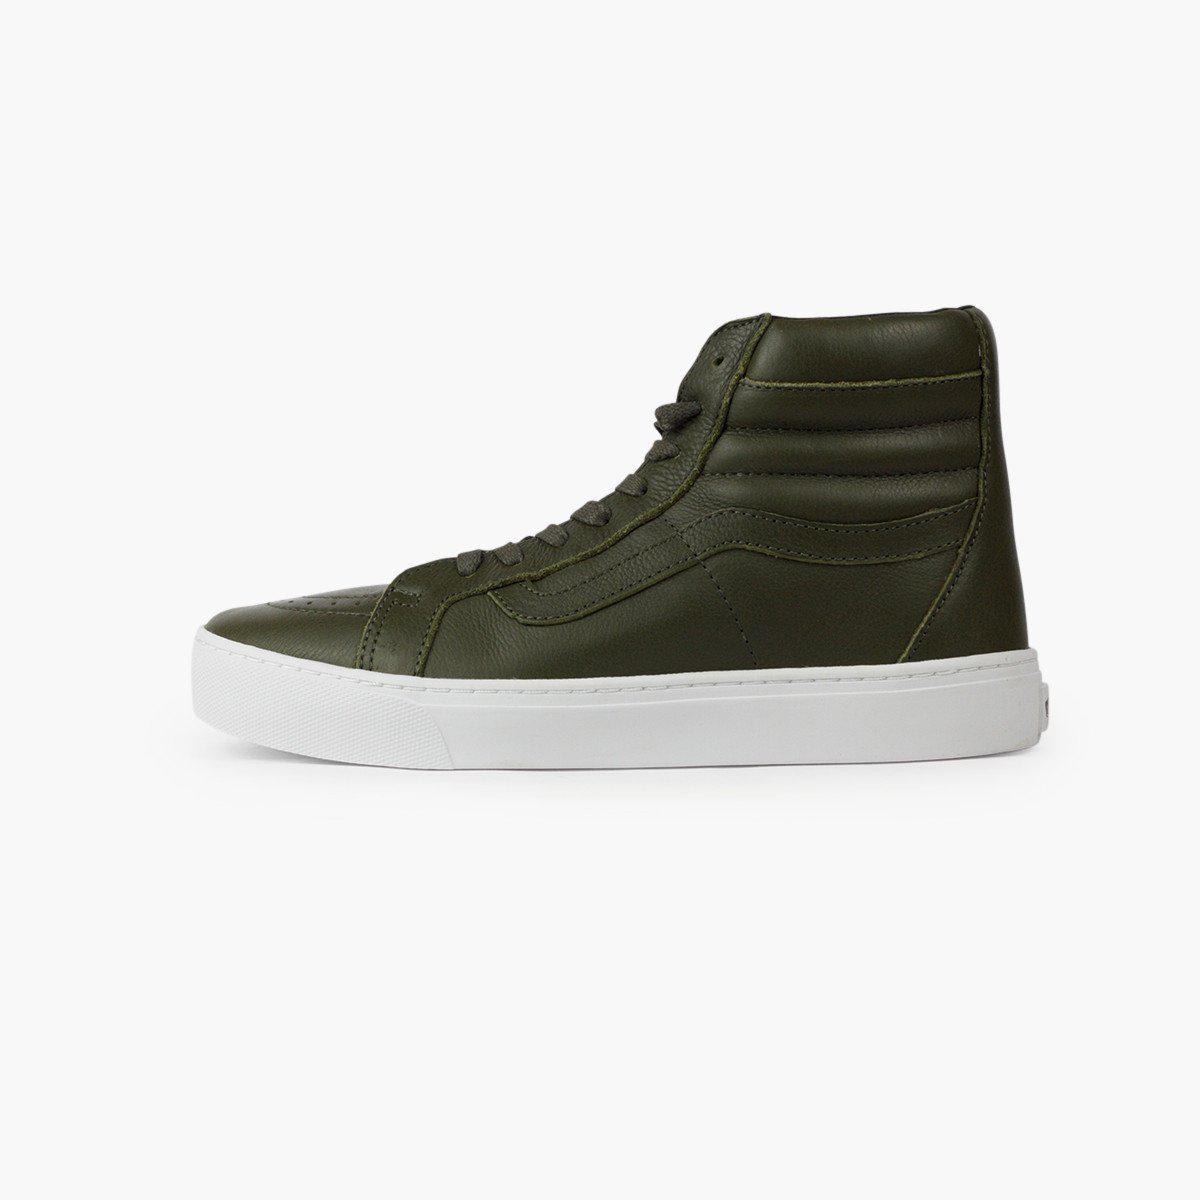 0fbc088a9d253f Lyst - Vans Sk8-hi Cup in Green for Men